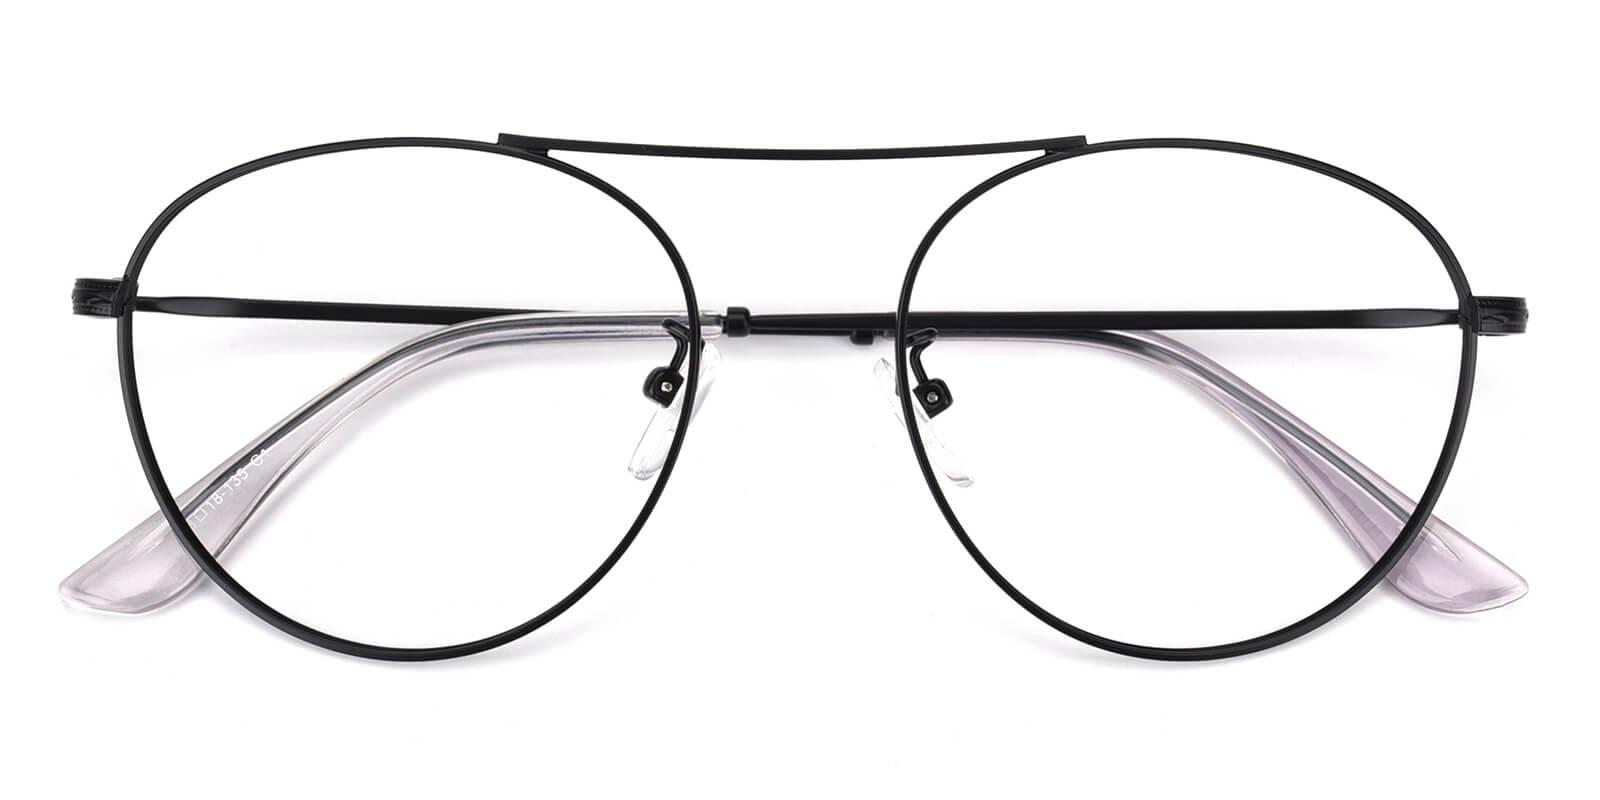 Fleybean-Black-Aviator-Metal-Eyeglasses-detail